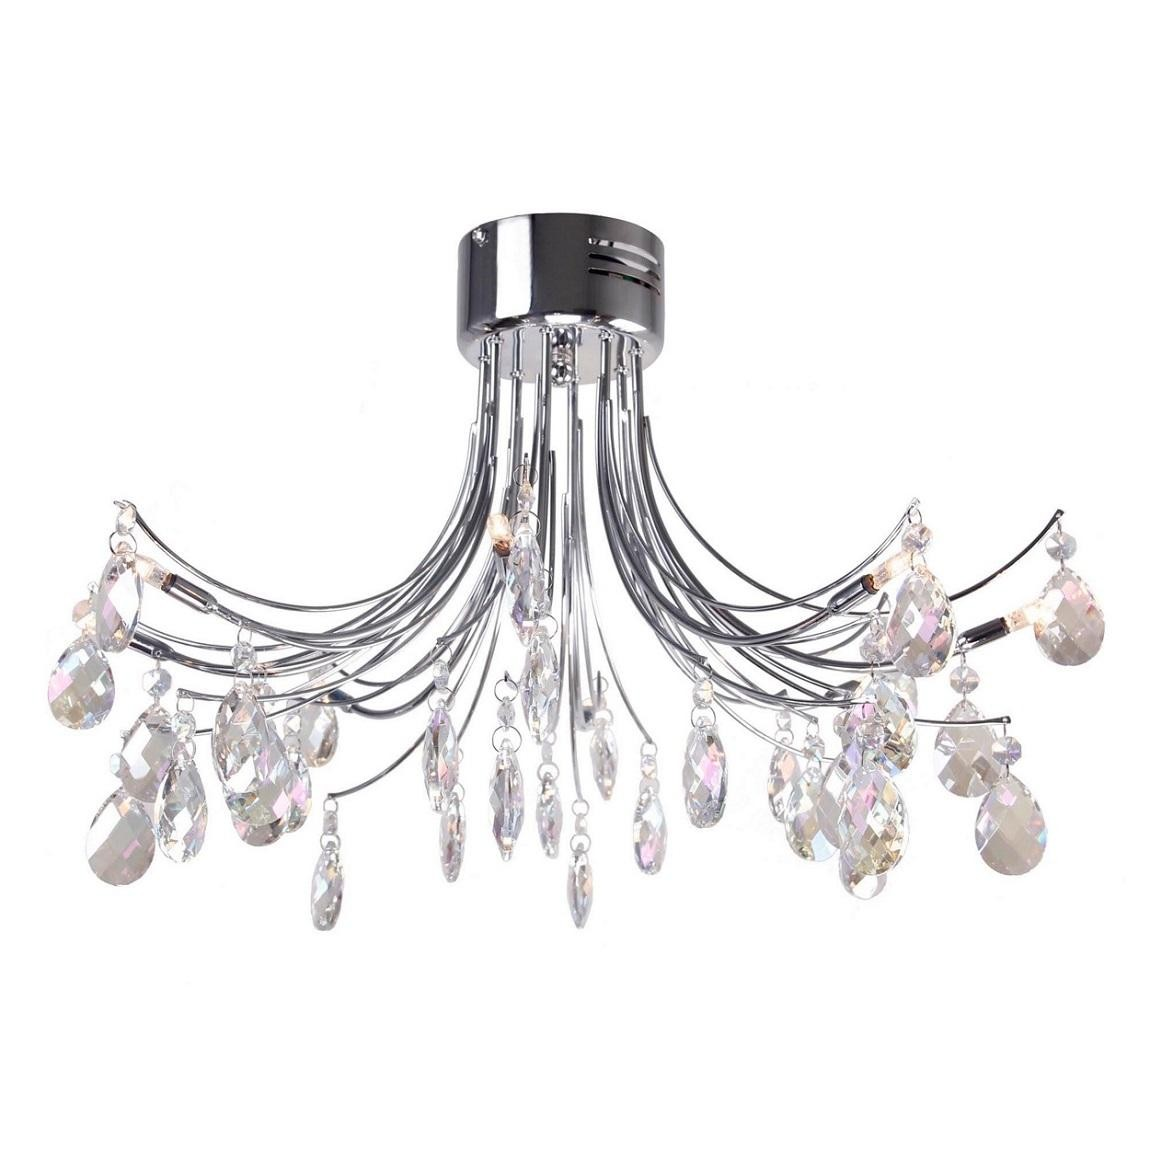 Debenhams Home Collection 'Zoe' Flush Low Ceiling Light